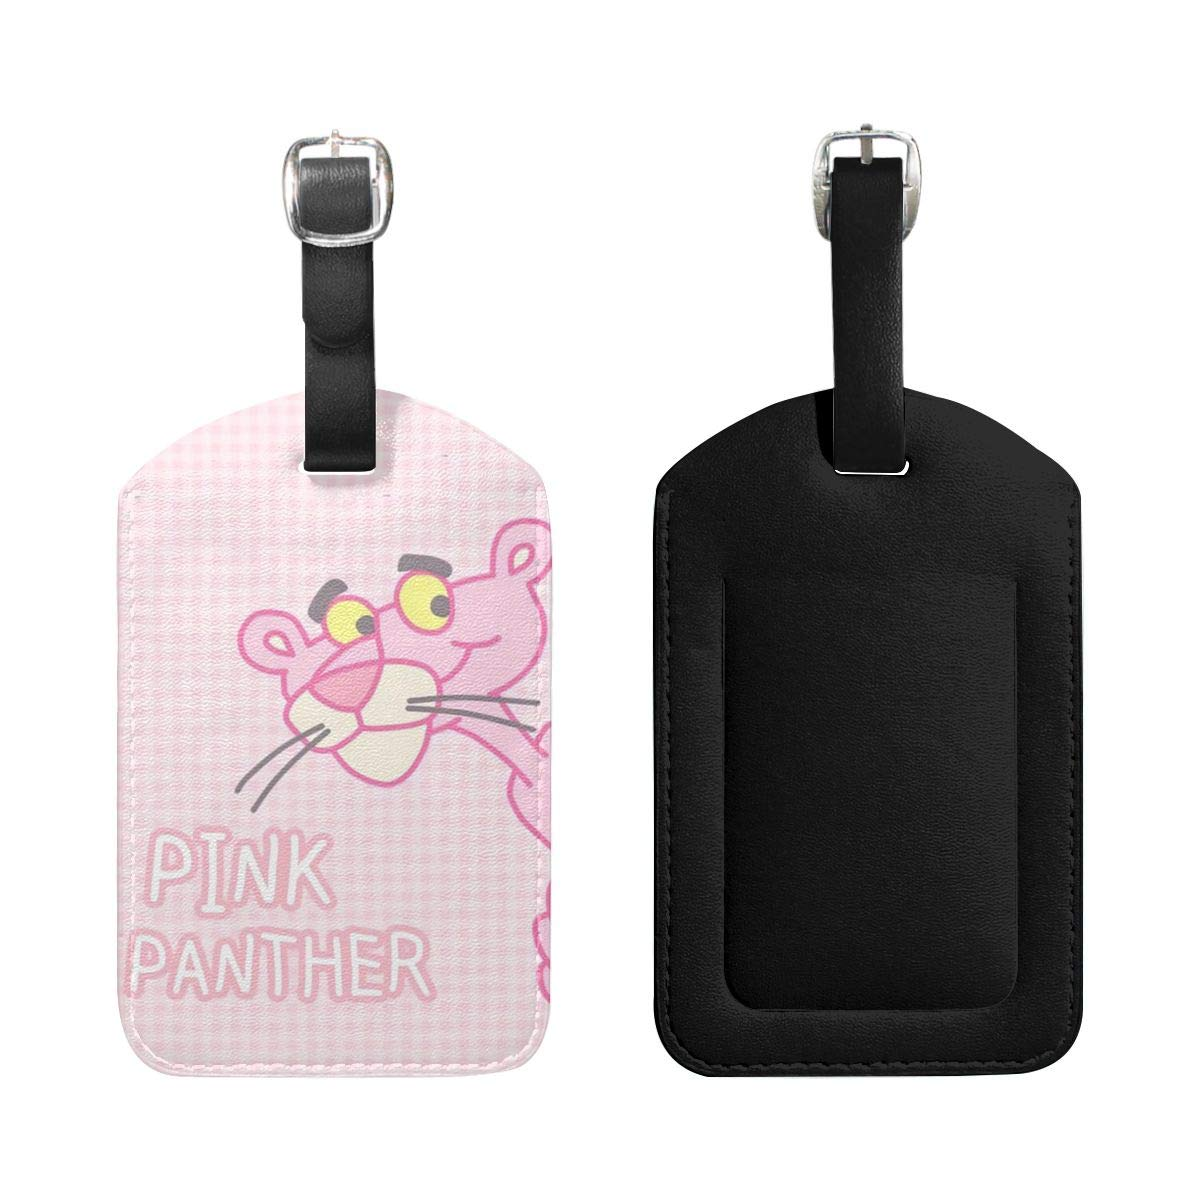 PU Leather Luggage Tags Hi Pink Panther Suitcase Labels Bag Adjustable Leather Strap Travel Accessories Set of 2